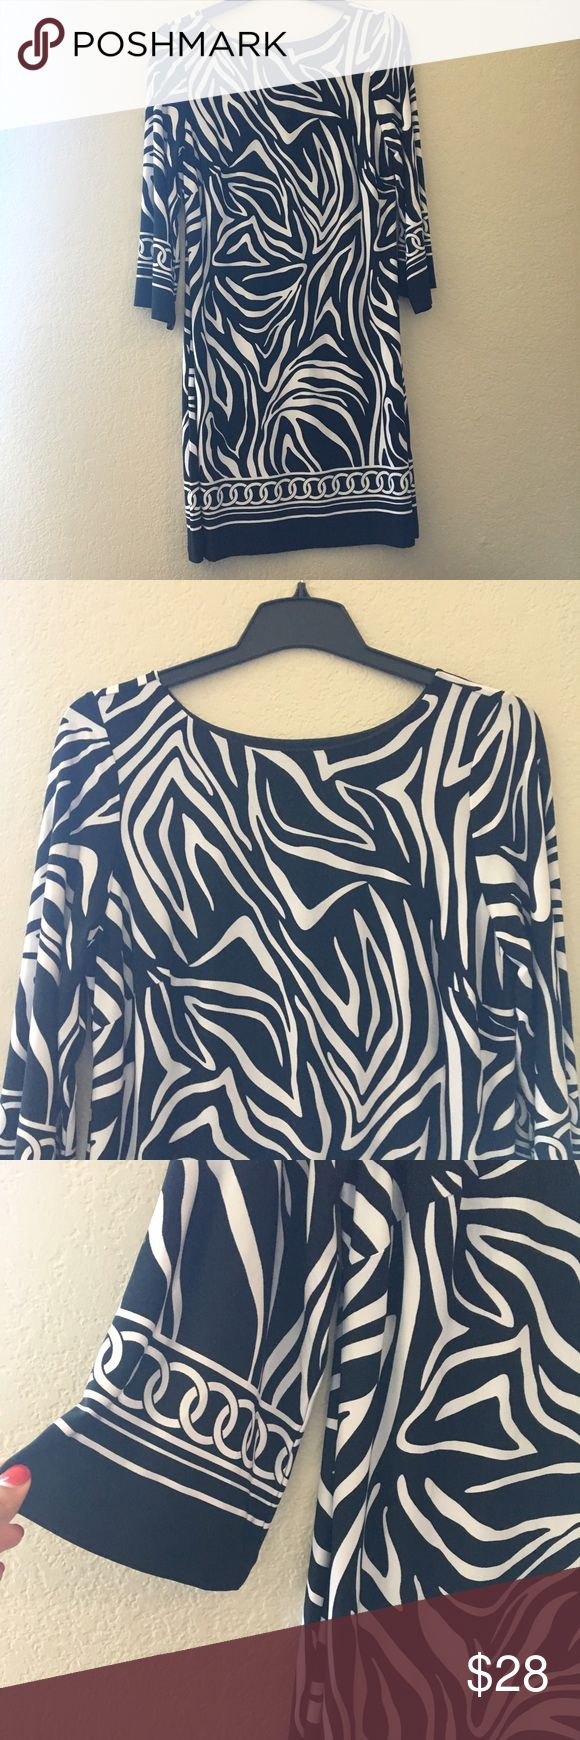 NWOT Black and White Print Jersey Dress New without tags black and white patterned dress. Beautiful, lightweight fabric. Perfect for work and special occasions Dresses Midi